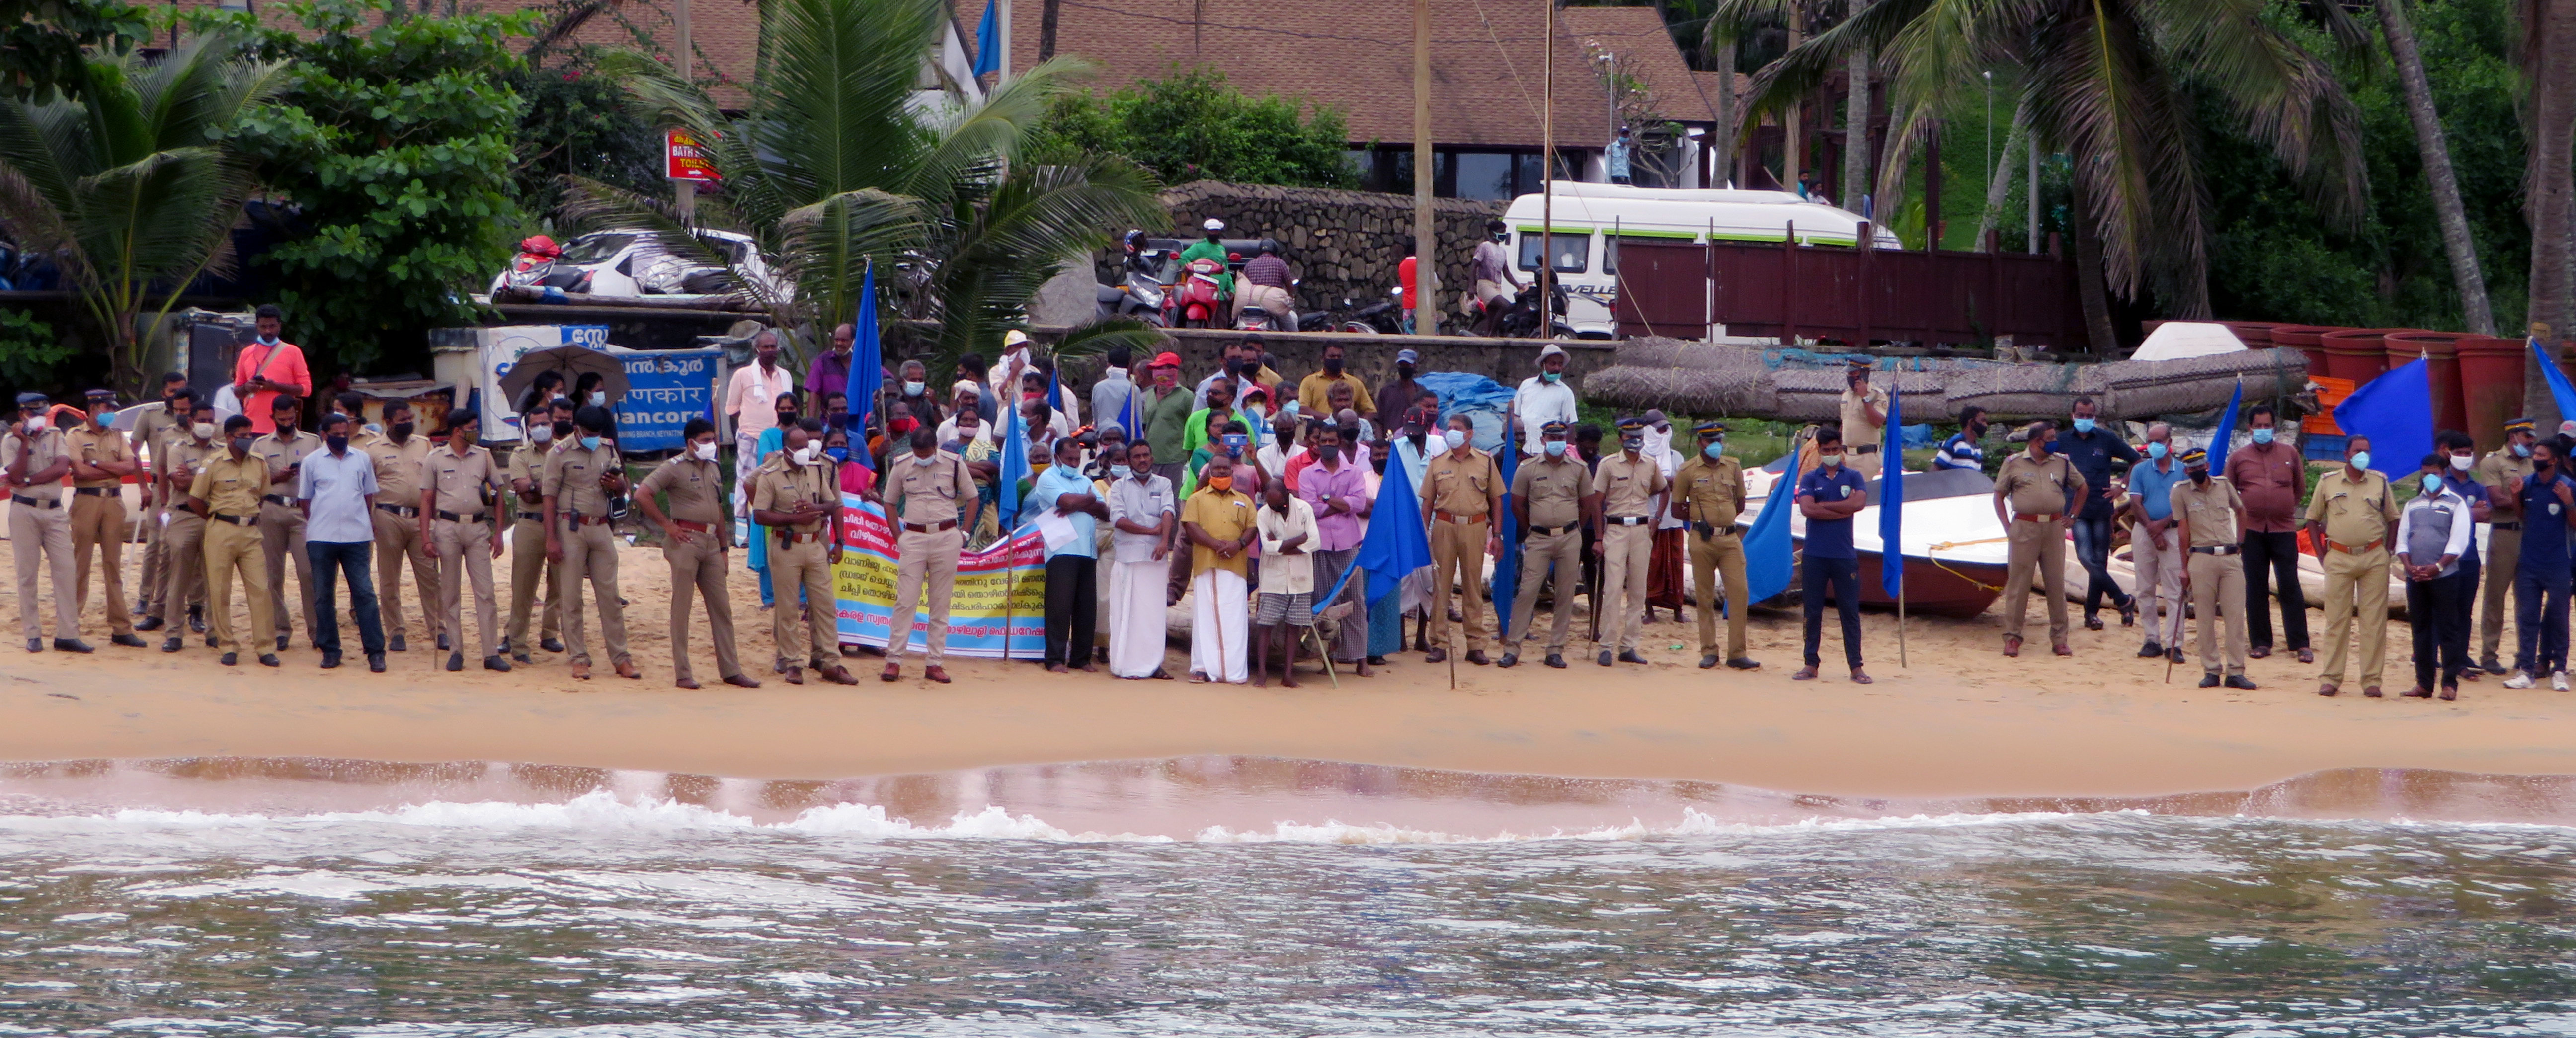 Police prevent fishers from joining the protest